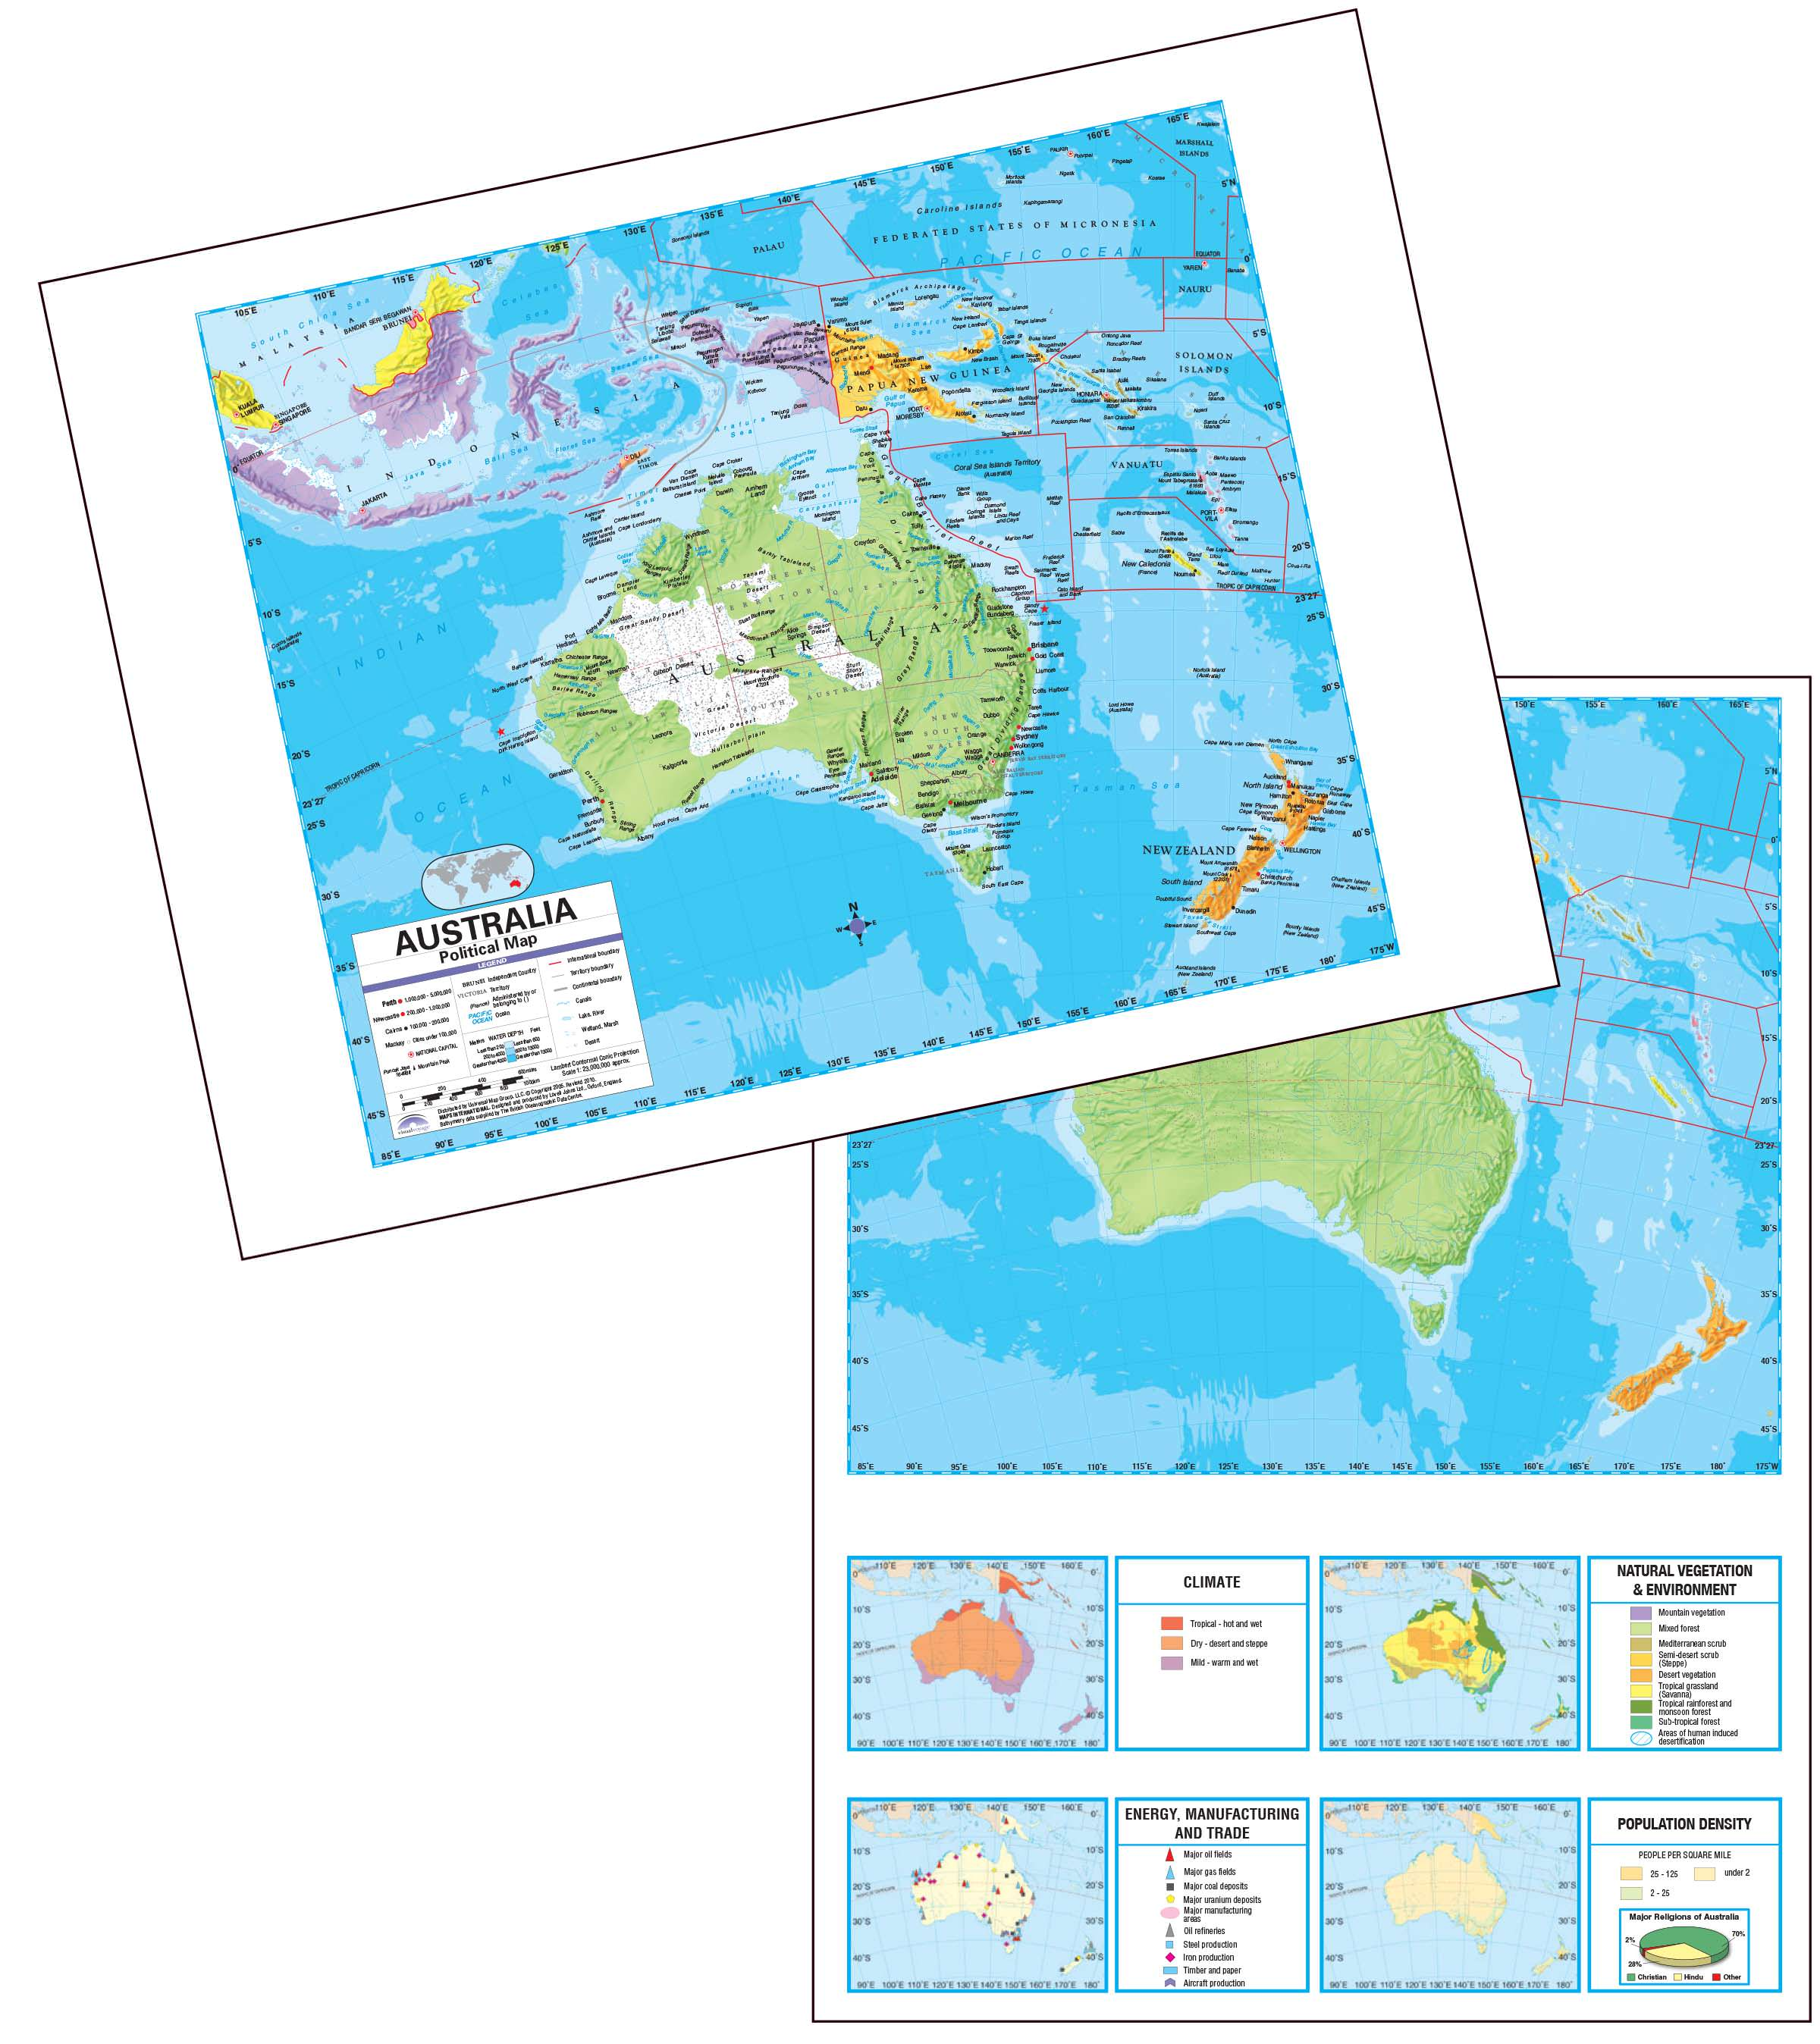 Australia Map Political.Australia Advanced Political Deskpad Map 30 Pack Kappa Map Group